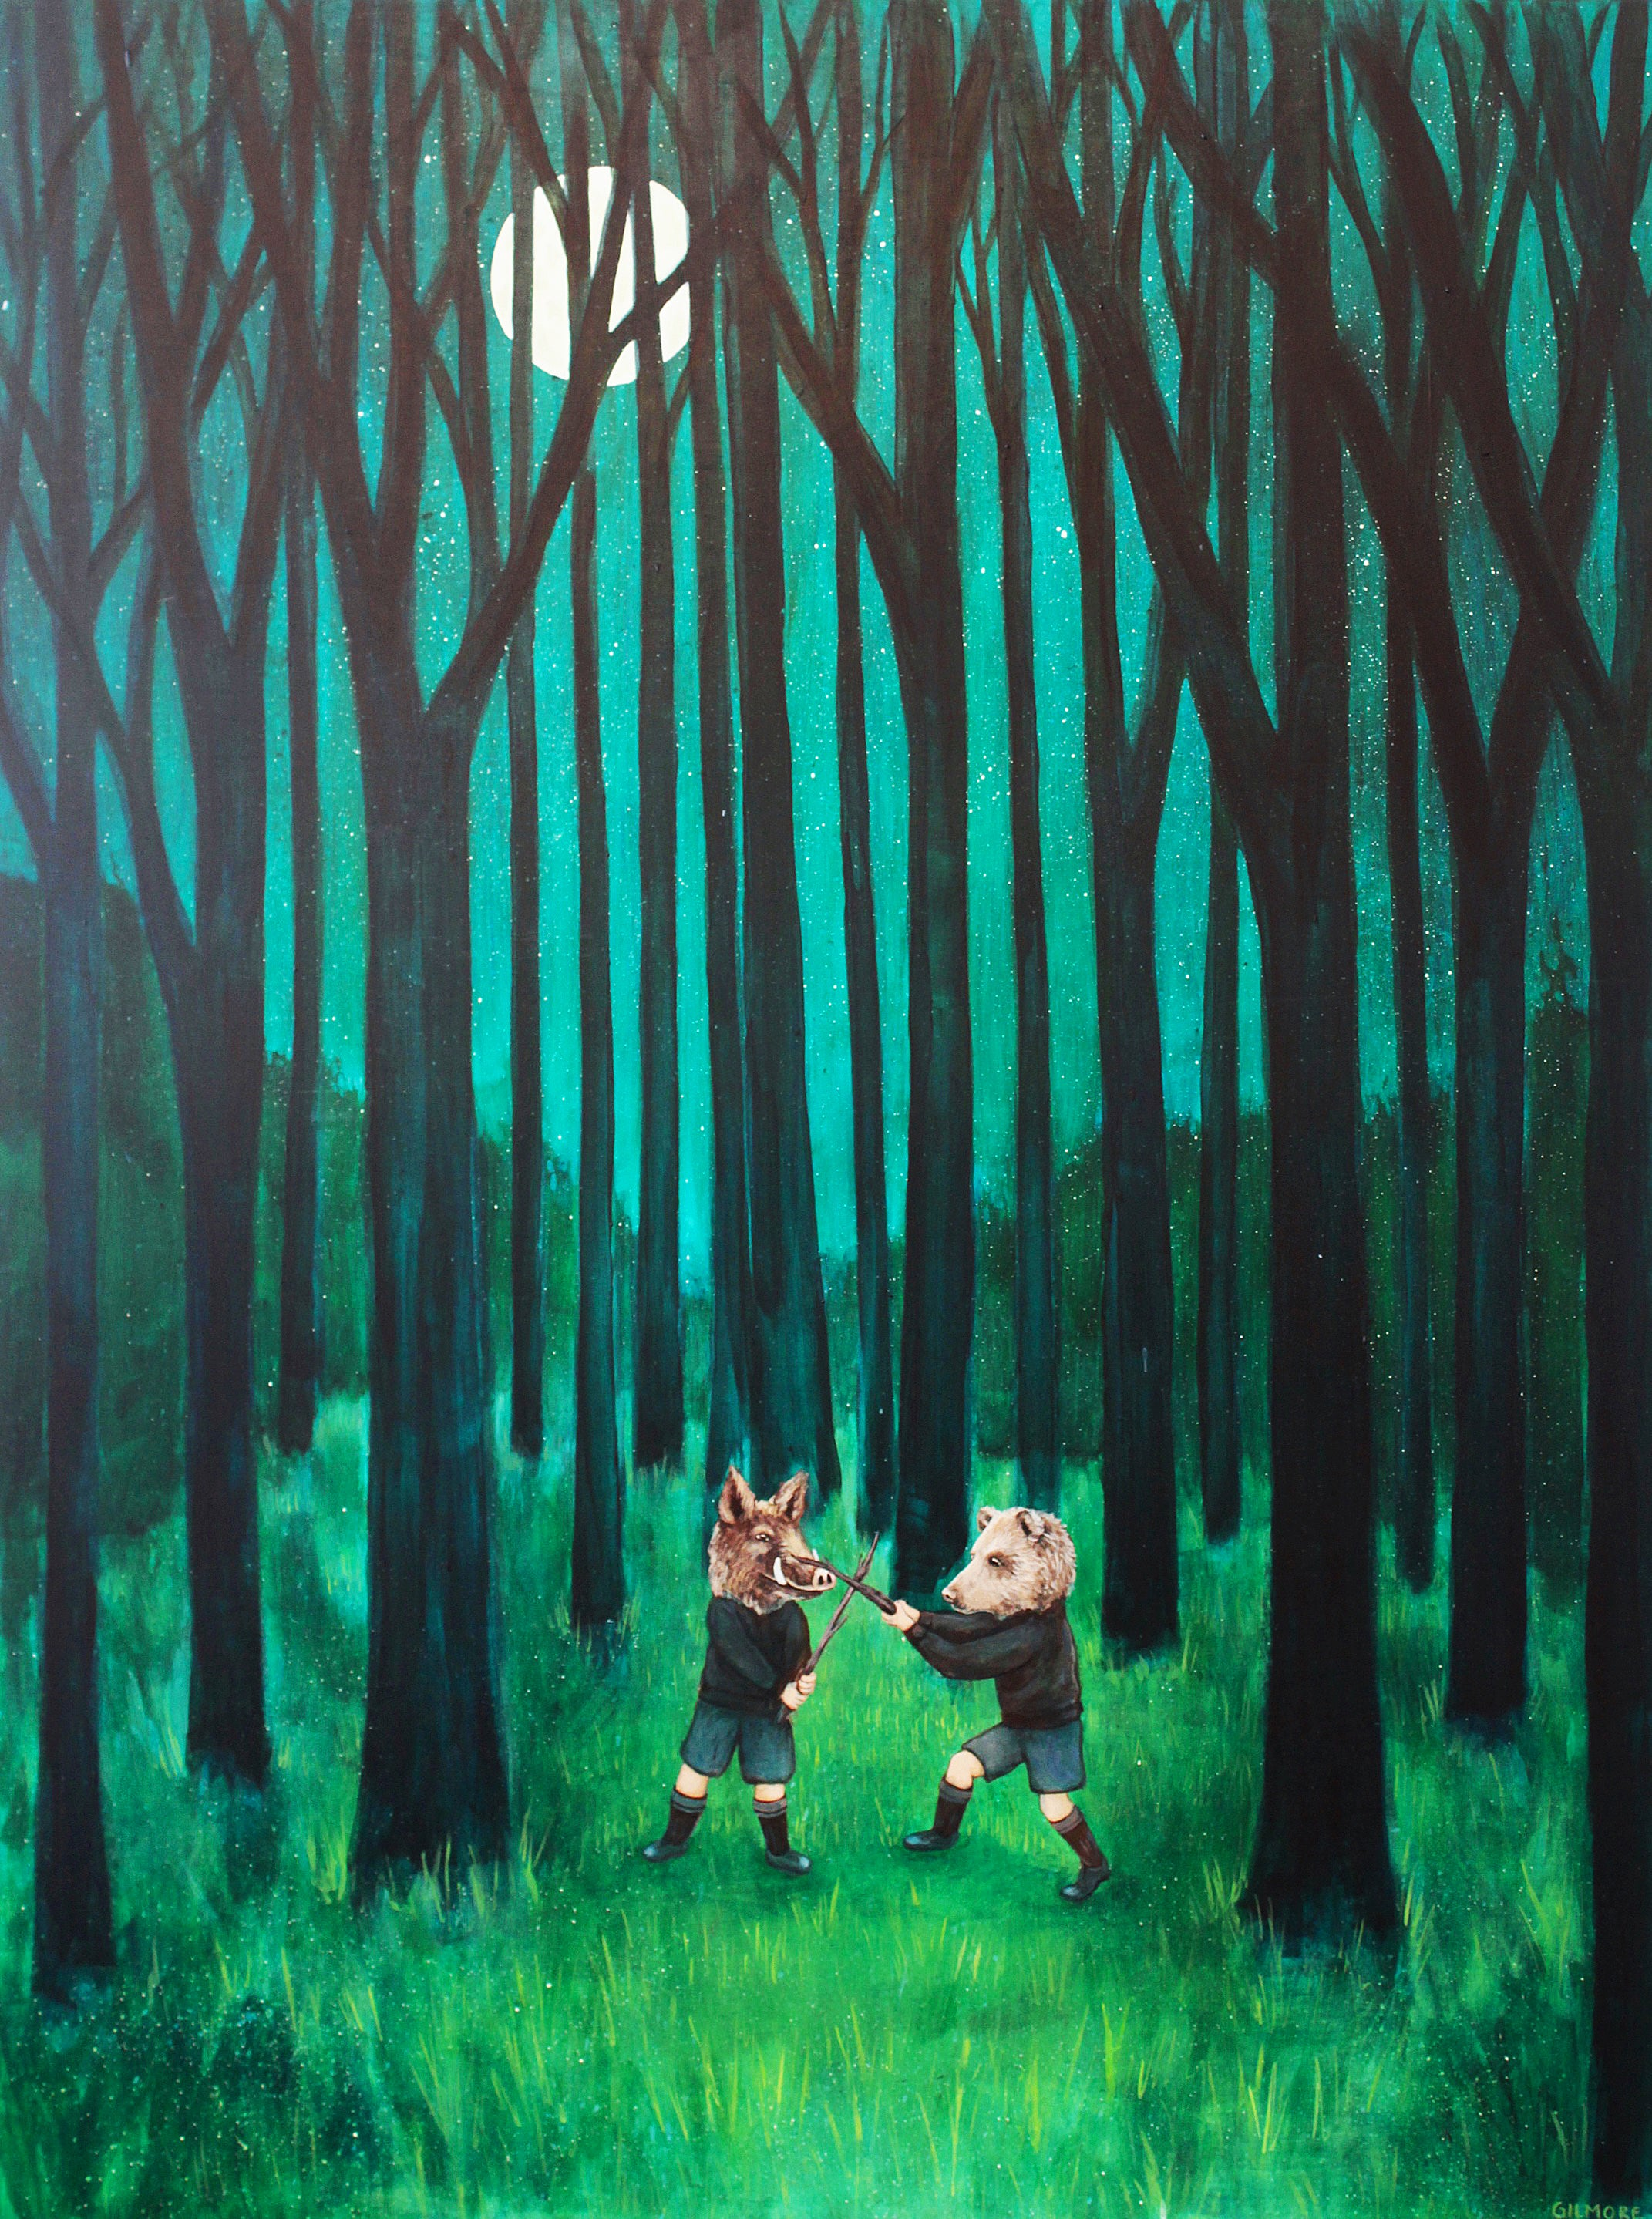 A Boar & Bear Battle In The Big Woods